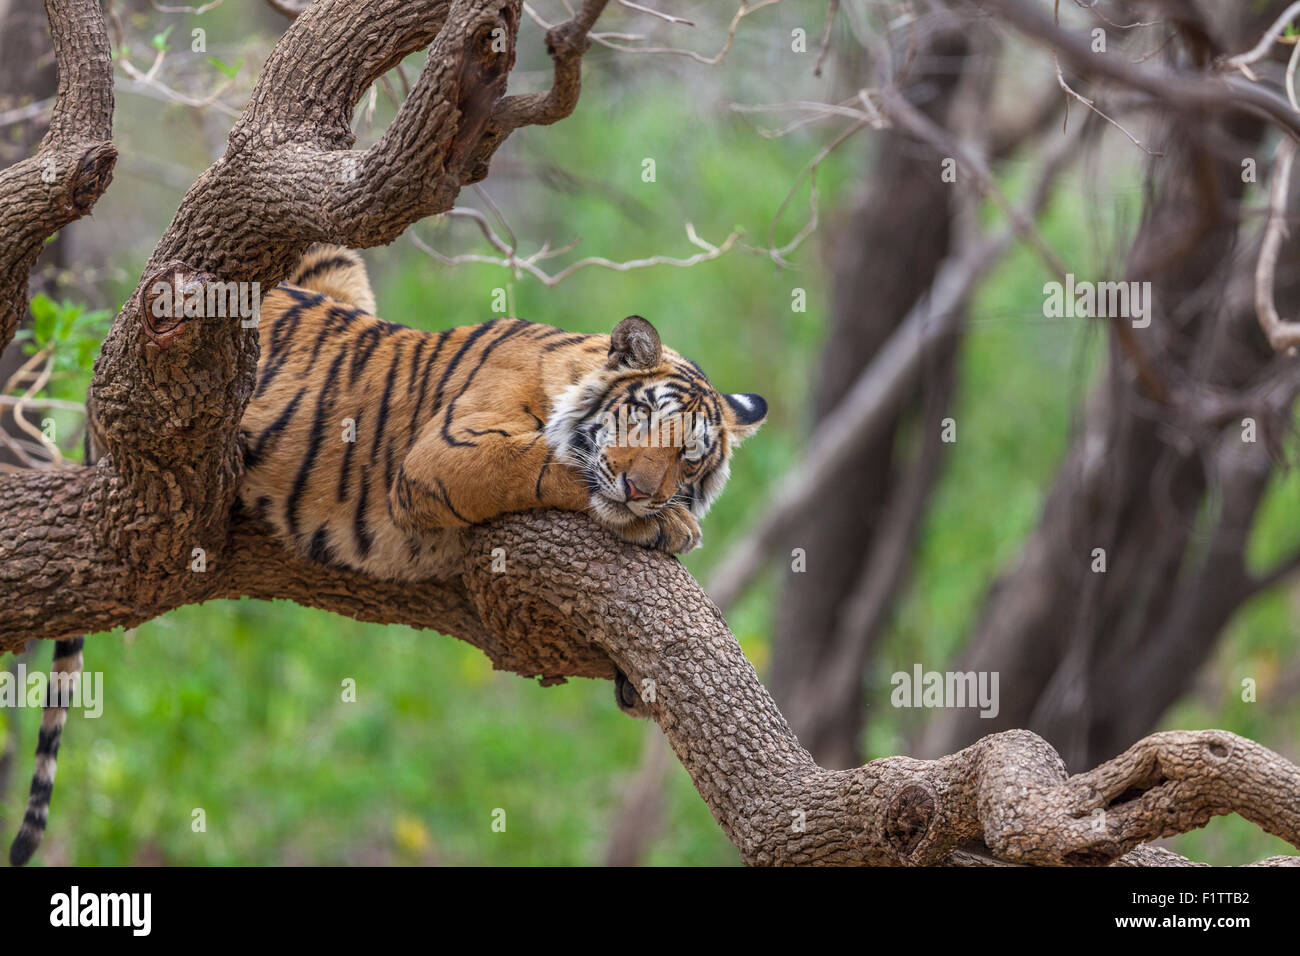 A Bengal Tiger around 13 months old climbed on a tree at Ranthambhore Forest, India. [Panthera Tigris] - Stock Image